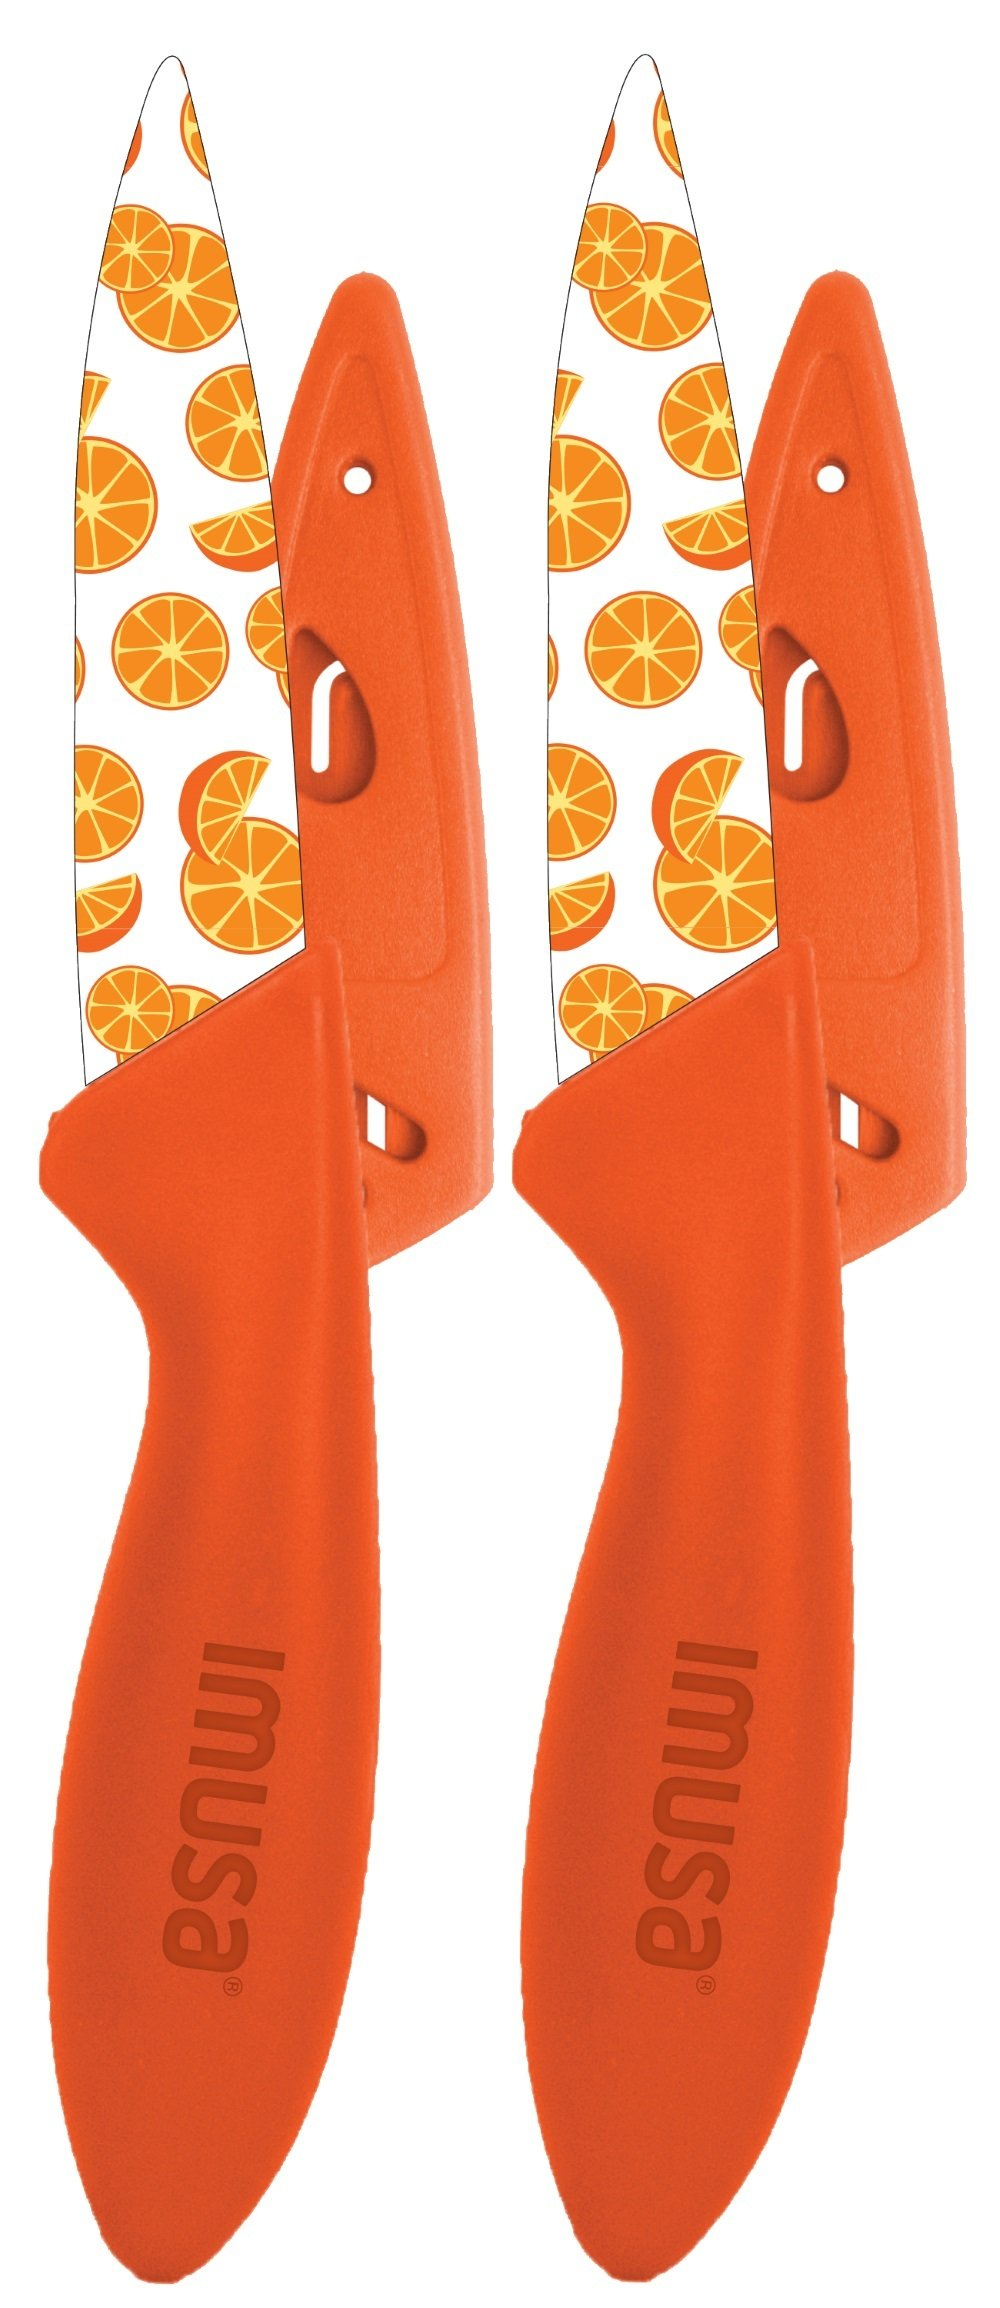 IMUSA 2pk Printed Paring Knife Set with Sheath Covers- Cut Fruit, Vegetables, and More, Make Food Prep Easy, Orange Design